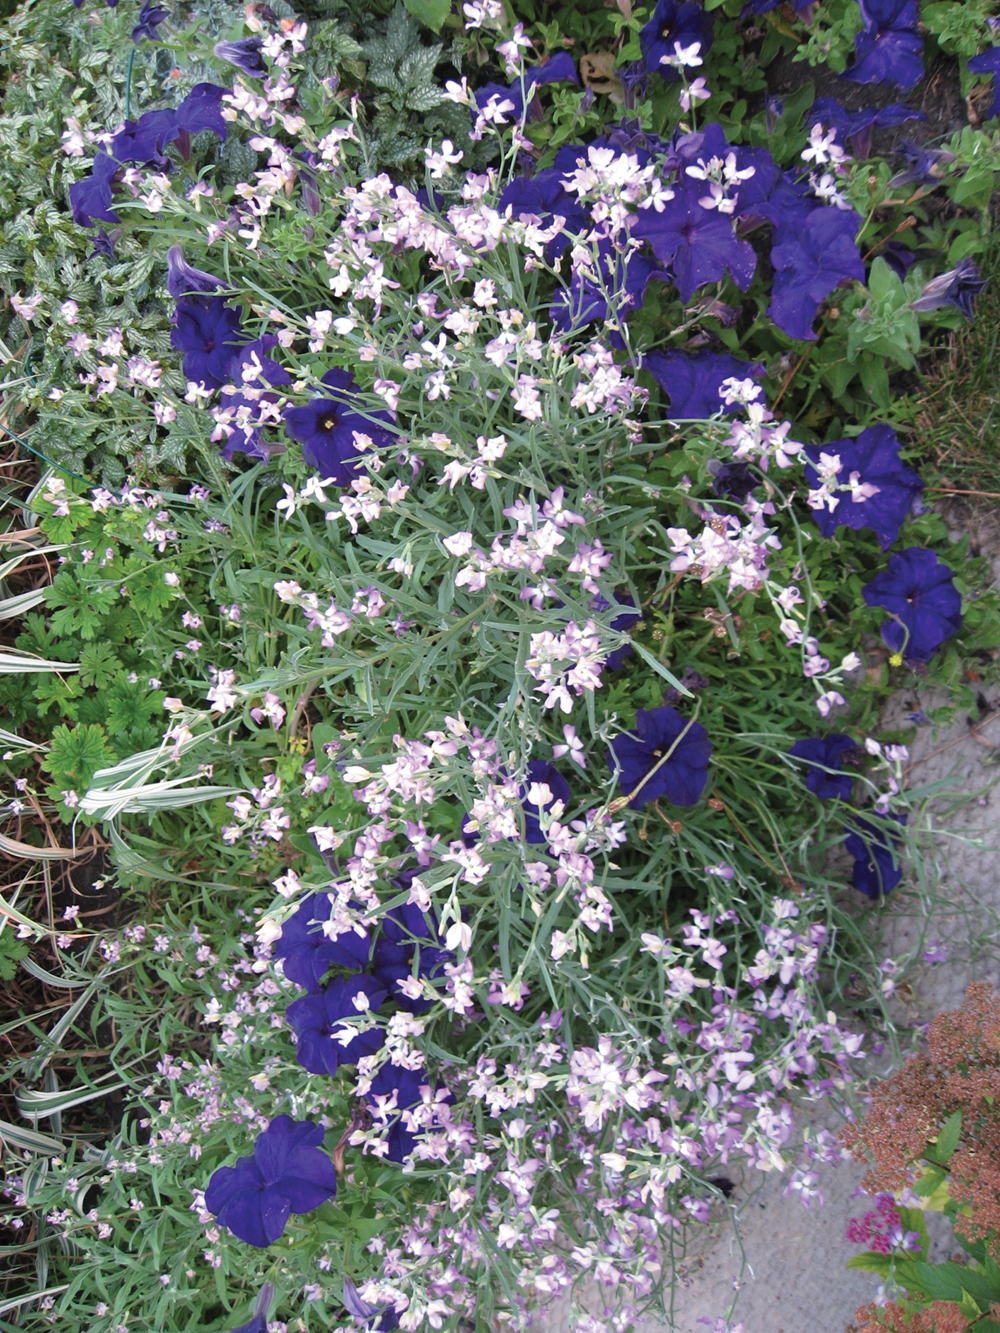 Evening Scented Stocks are combined here with dark-purple petunias.